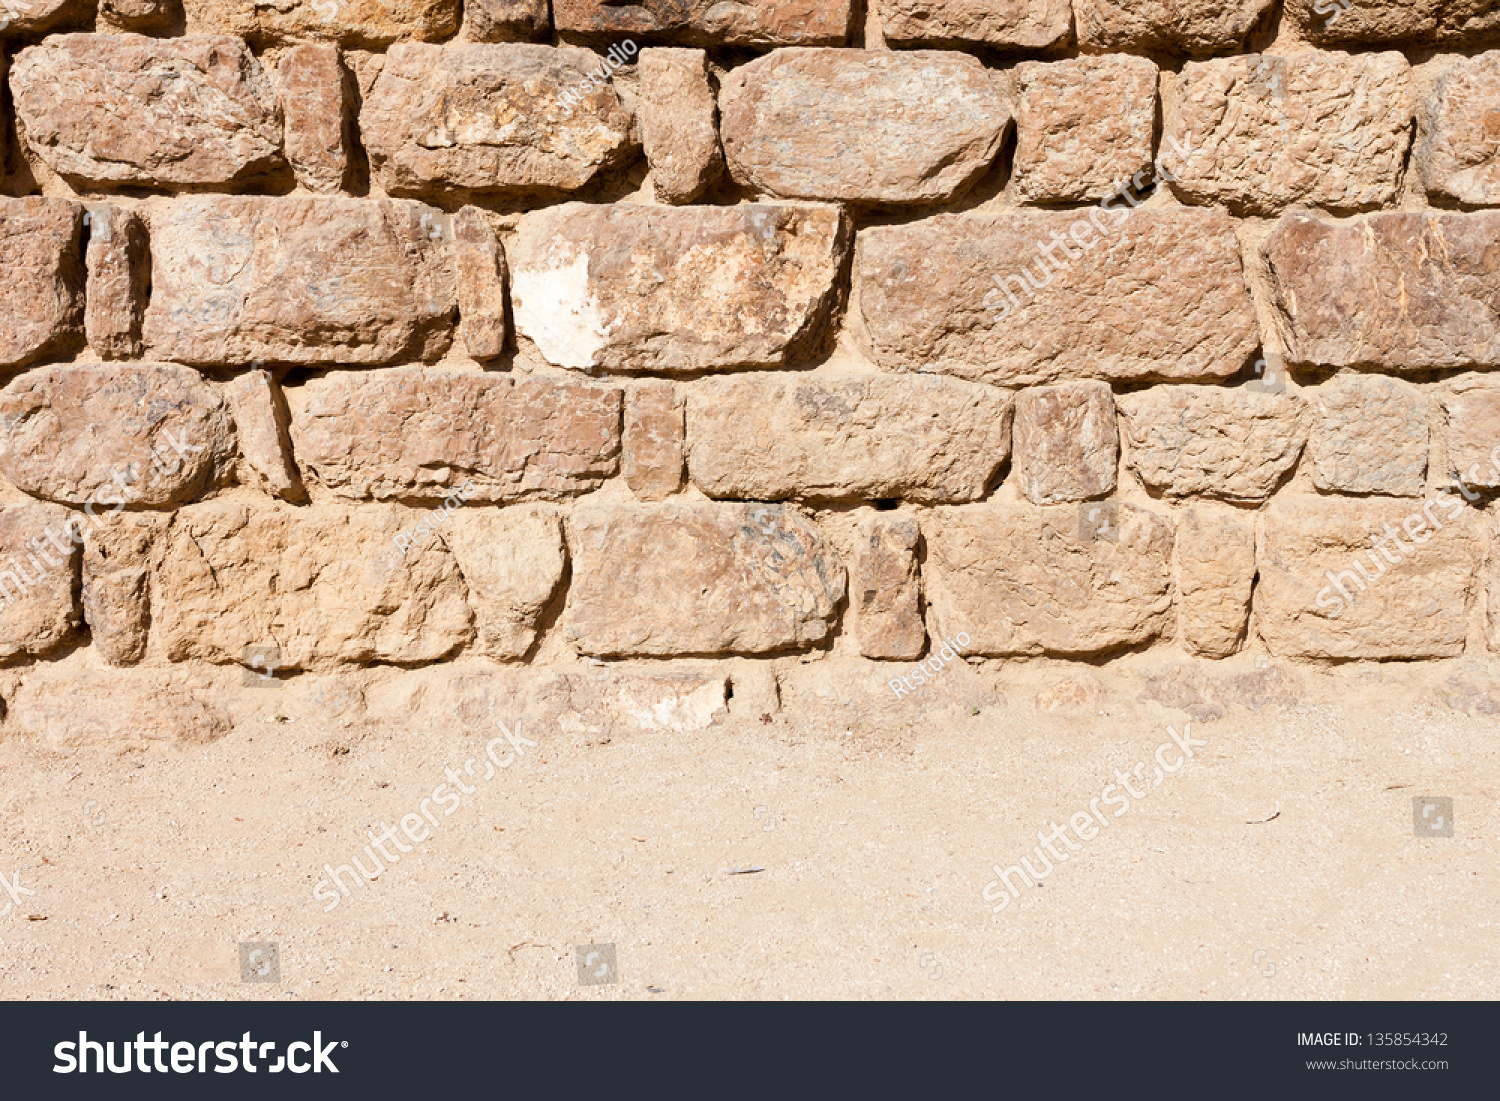 Vintage Stone Walls : Vintage stone wall and sandy floor texture background